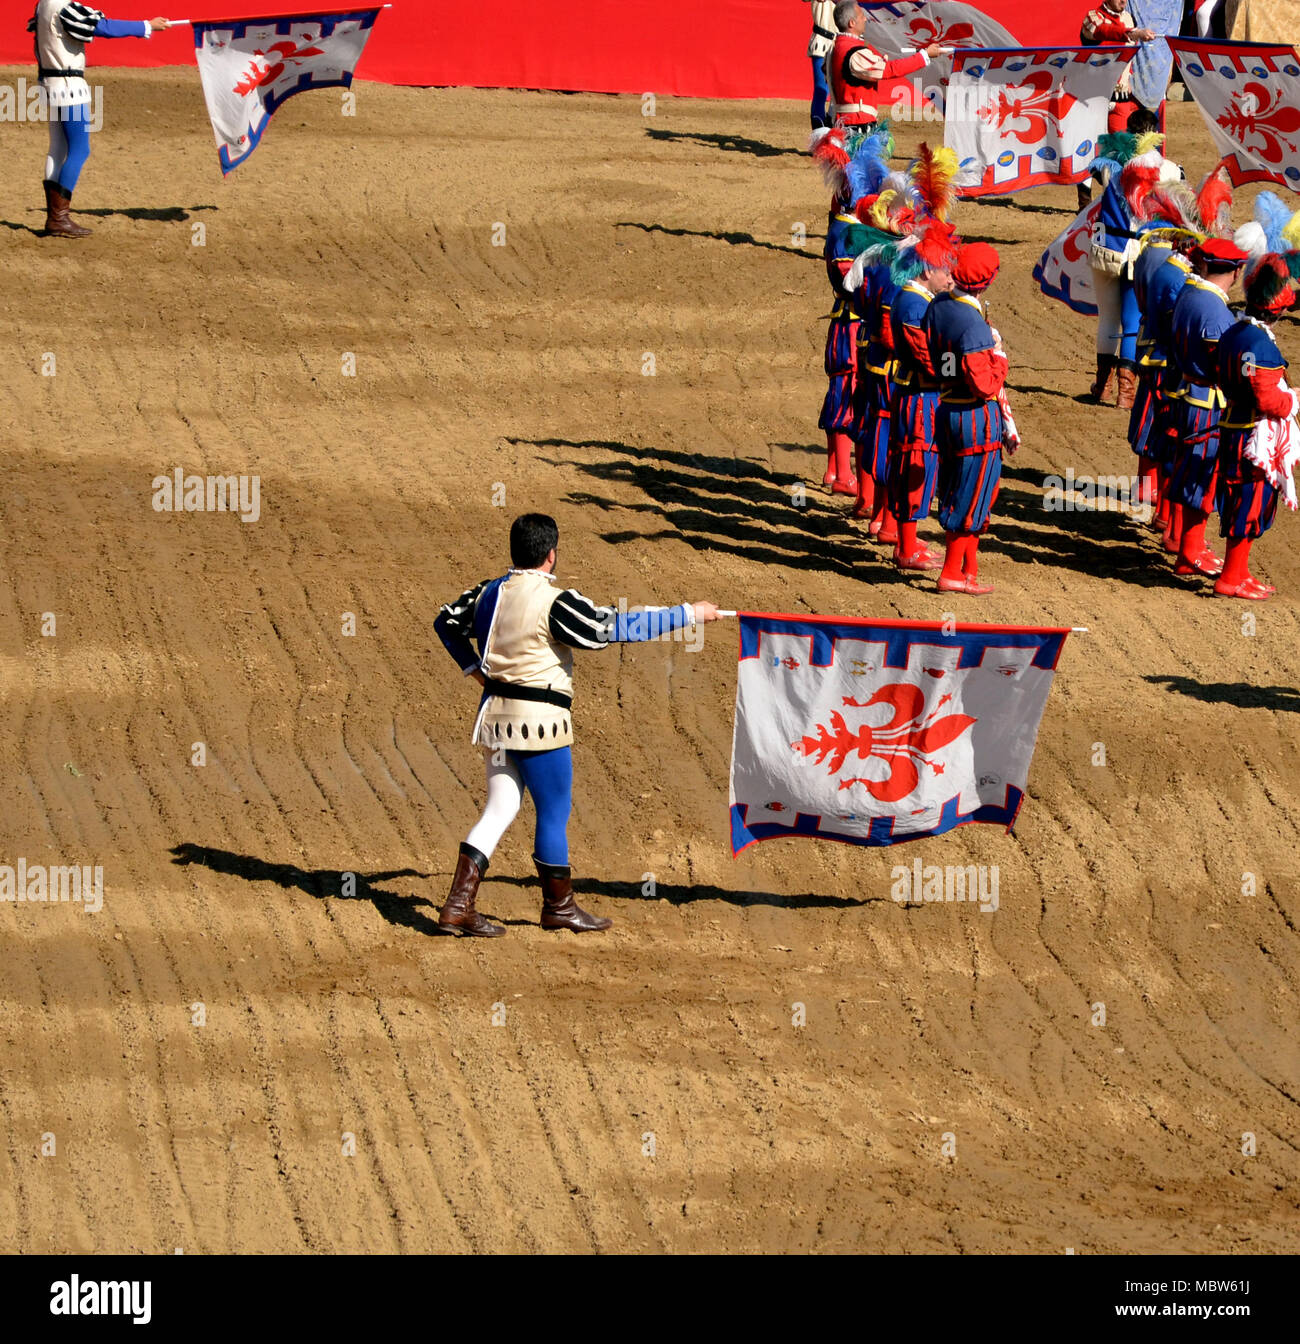 Flag wavers during a performance of historic football in Florence - Stock Image